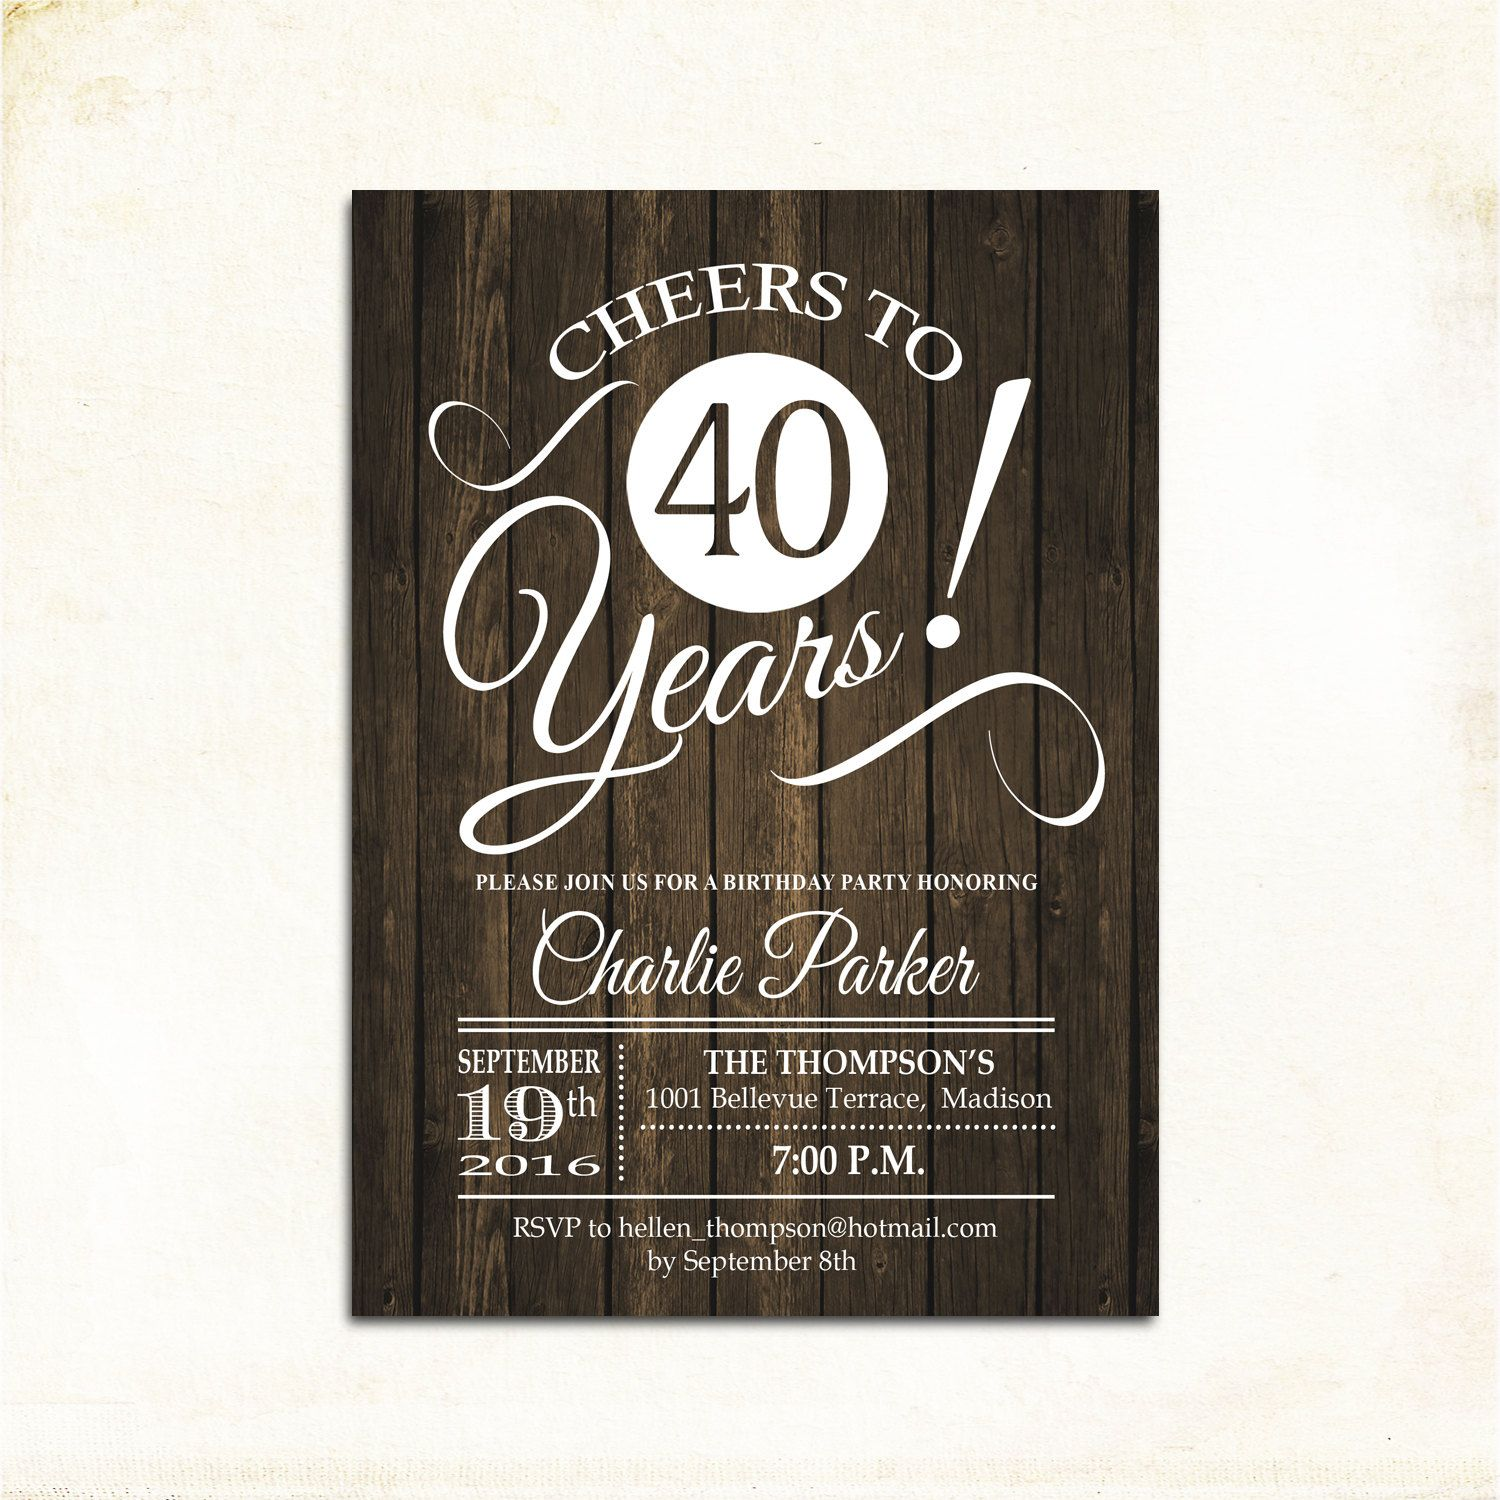 40th Birthday Invitation Any Age Rustic Invite Cheers To 40 Years Wood More